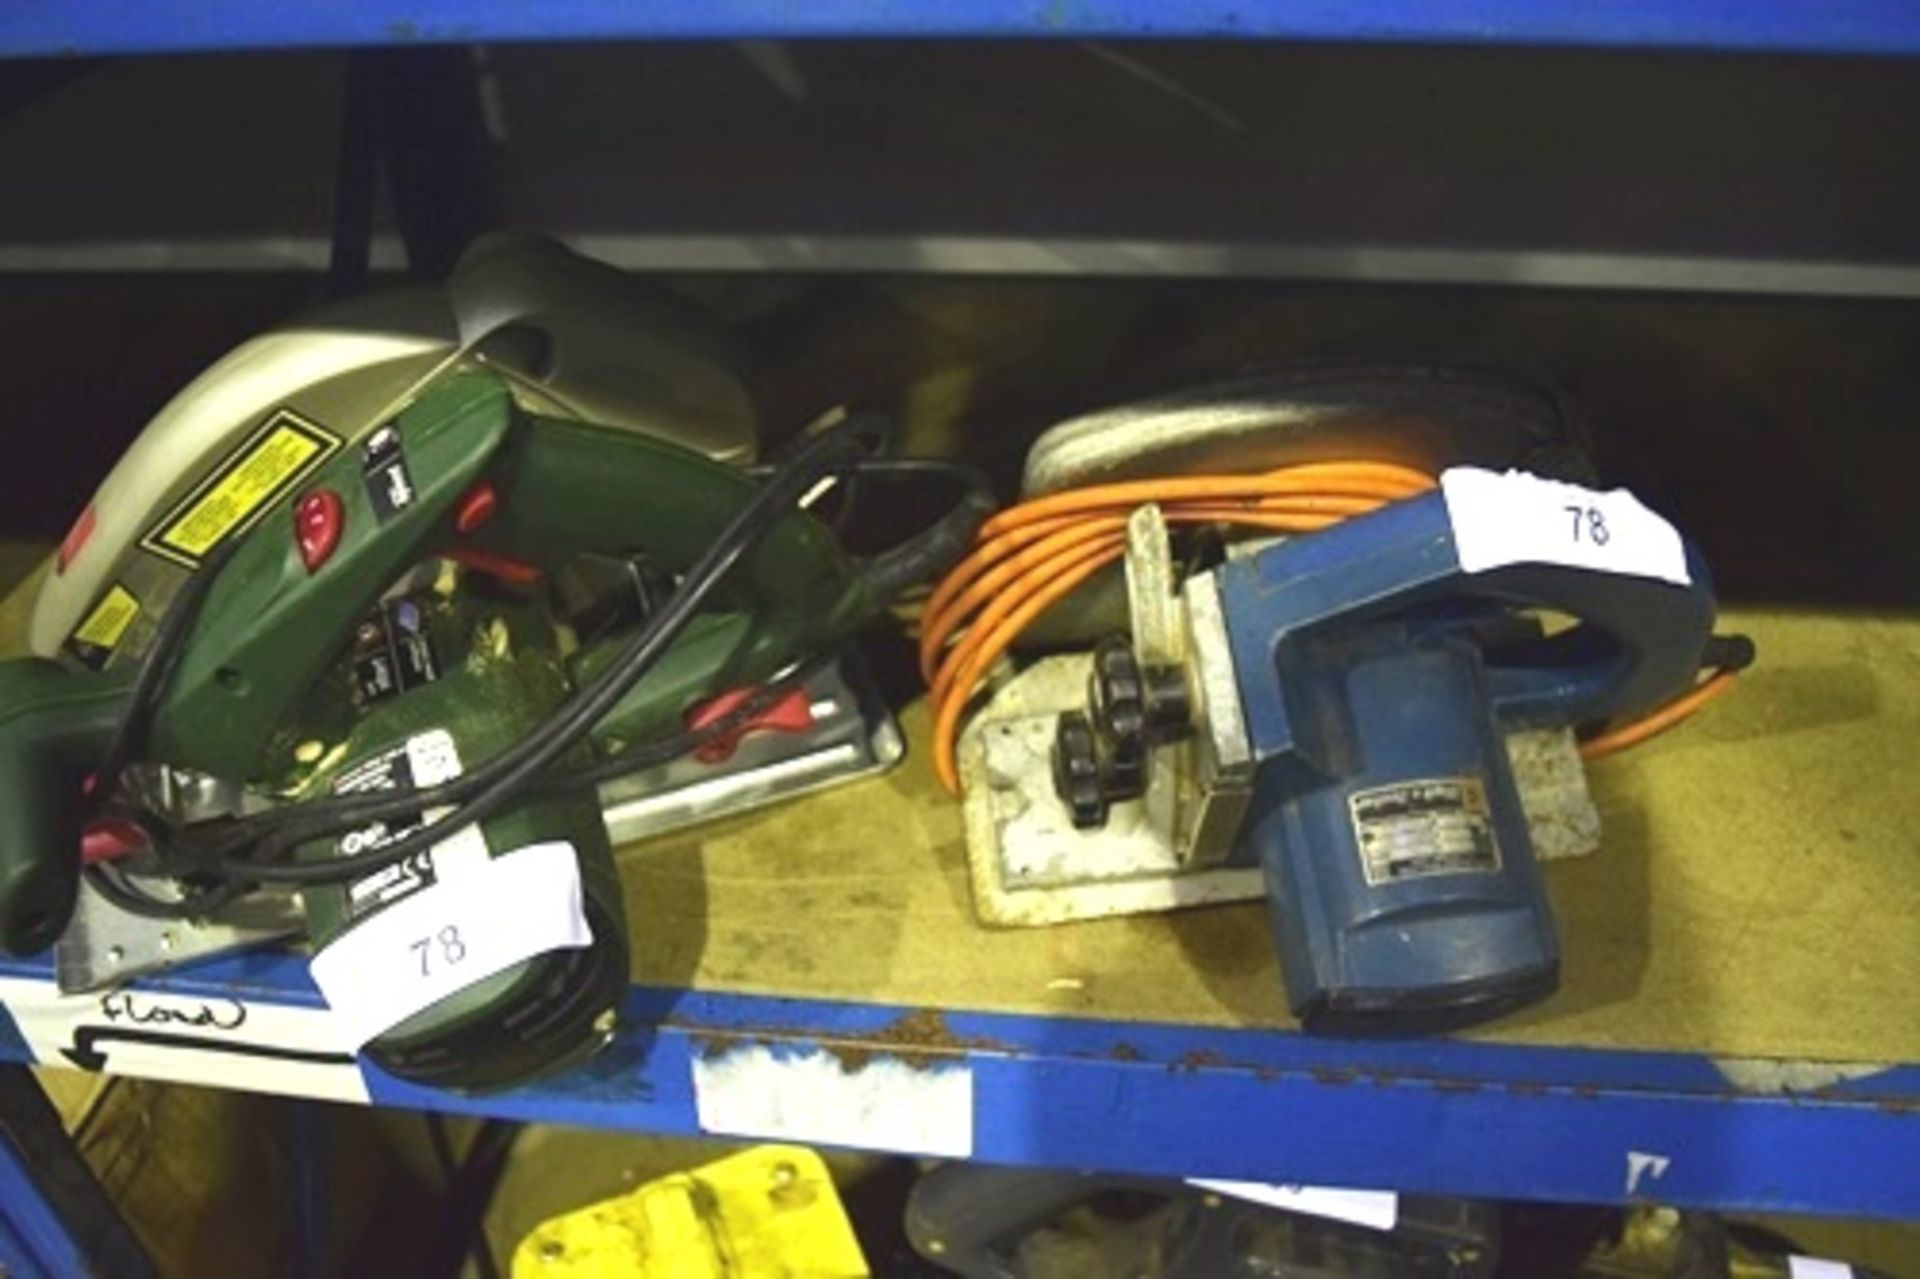 Lot 78 - Parkside electric circular saw, model PHKS 1300 A1, 240V, and a Black & Decker HD1000 saw, 240V -